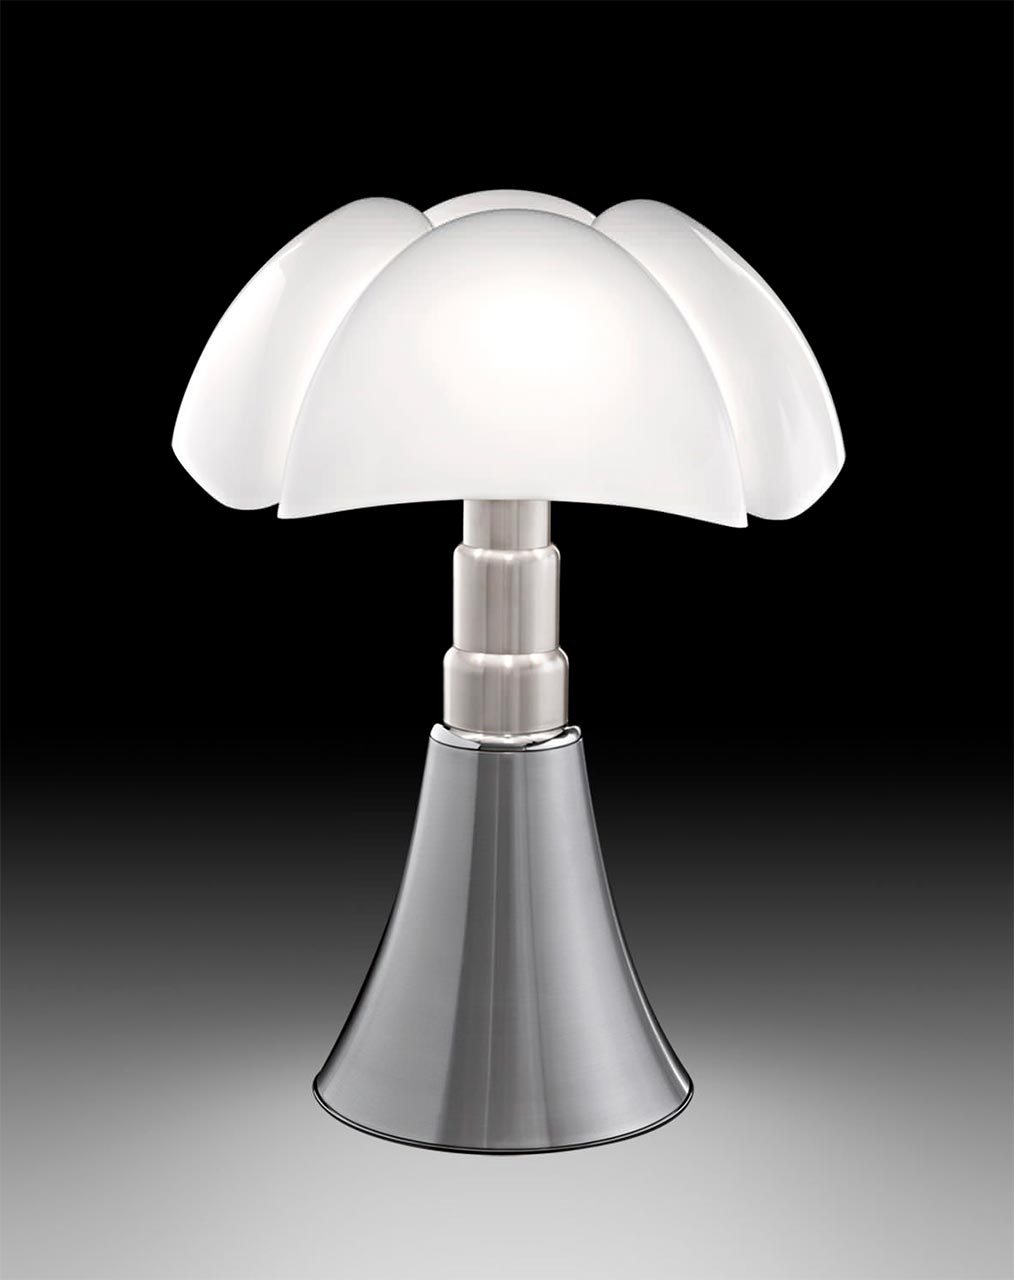 Gae Aulenti, lamp Pipistrello for Martinelli Luce (1965)